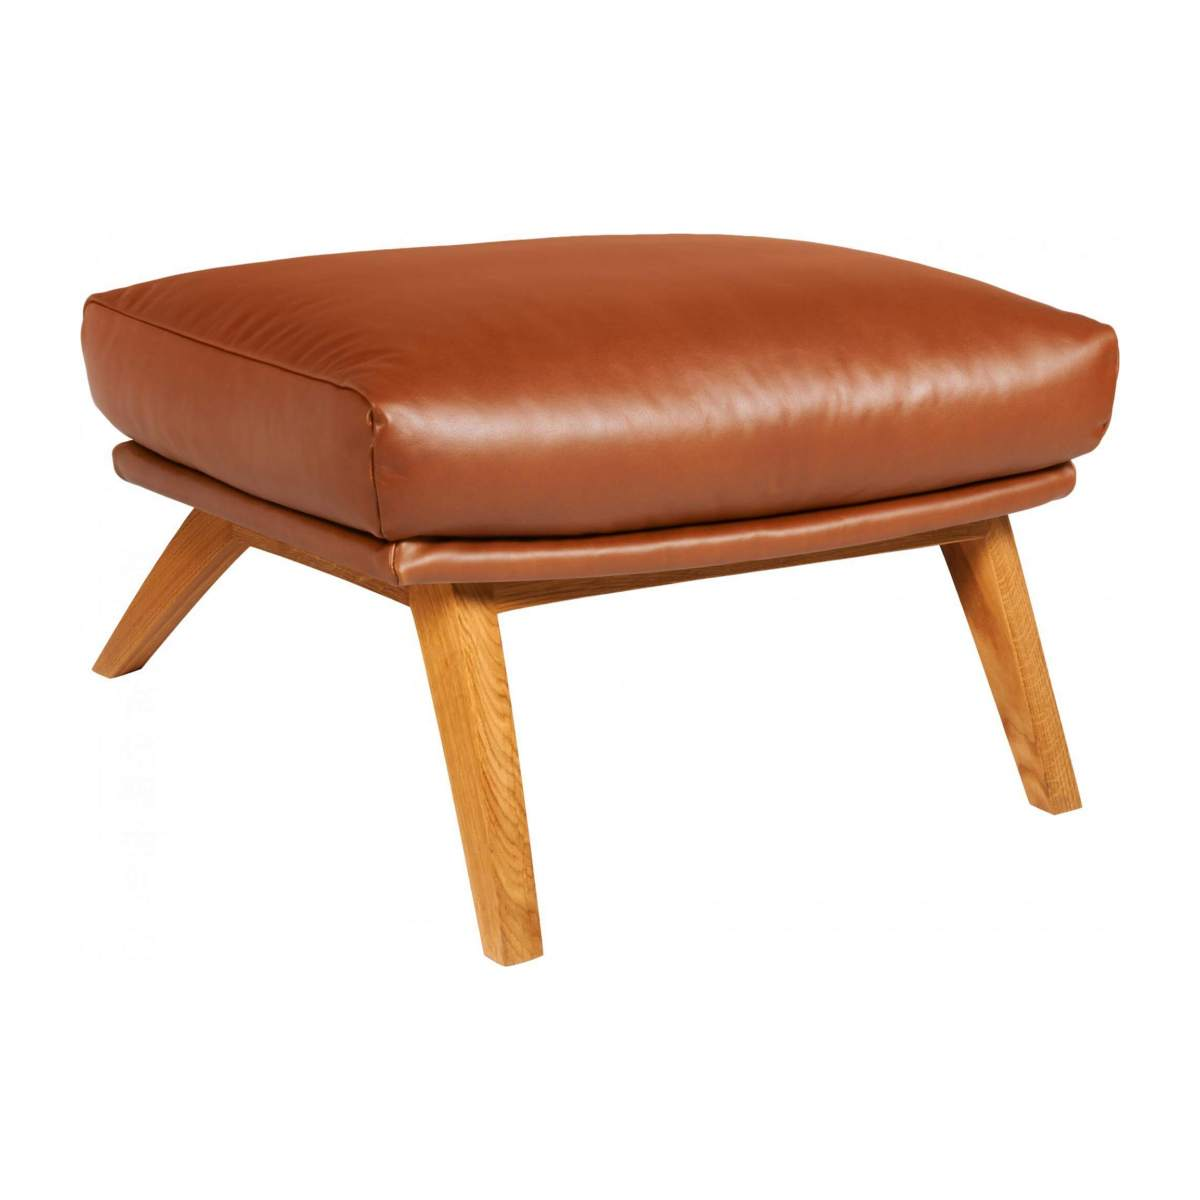 Footstool in aniline Vintage Leather, old chestnut with oak legs n°2